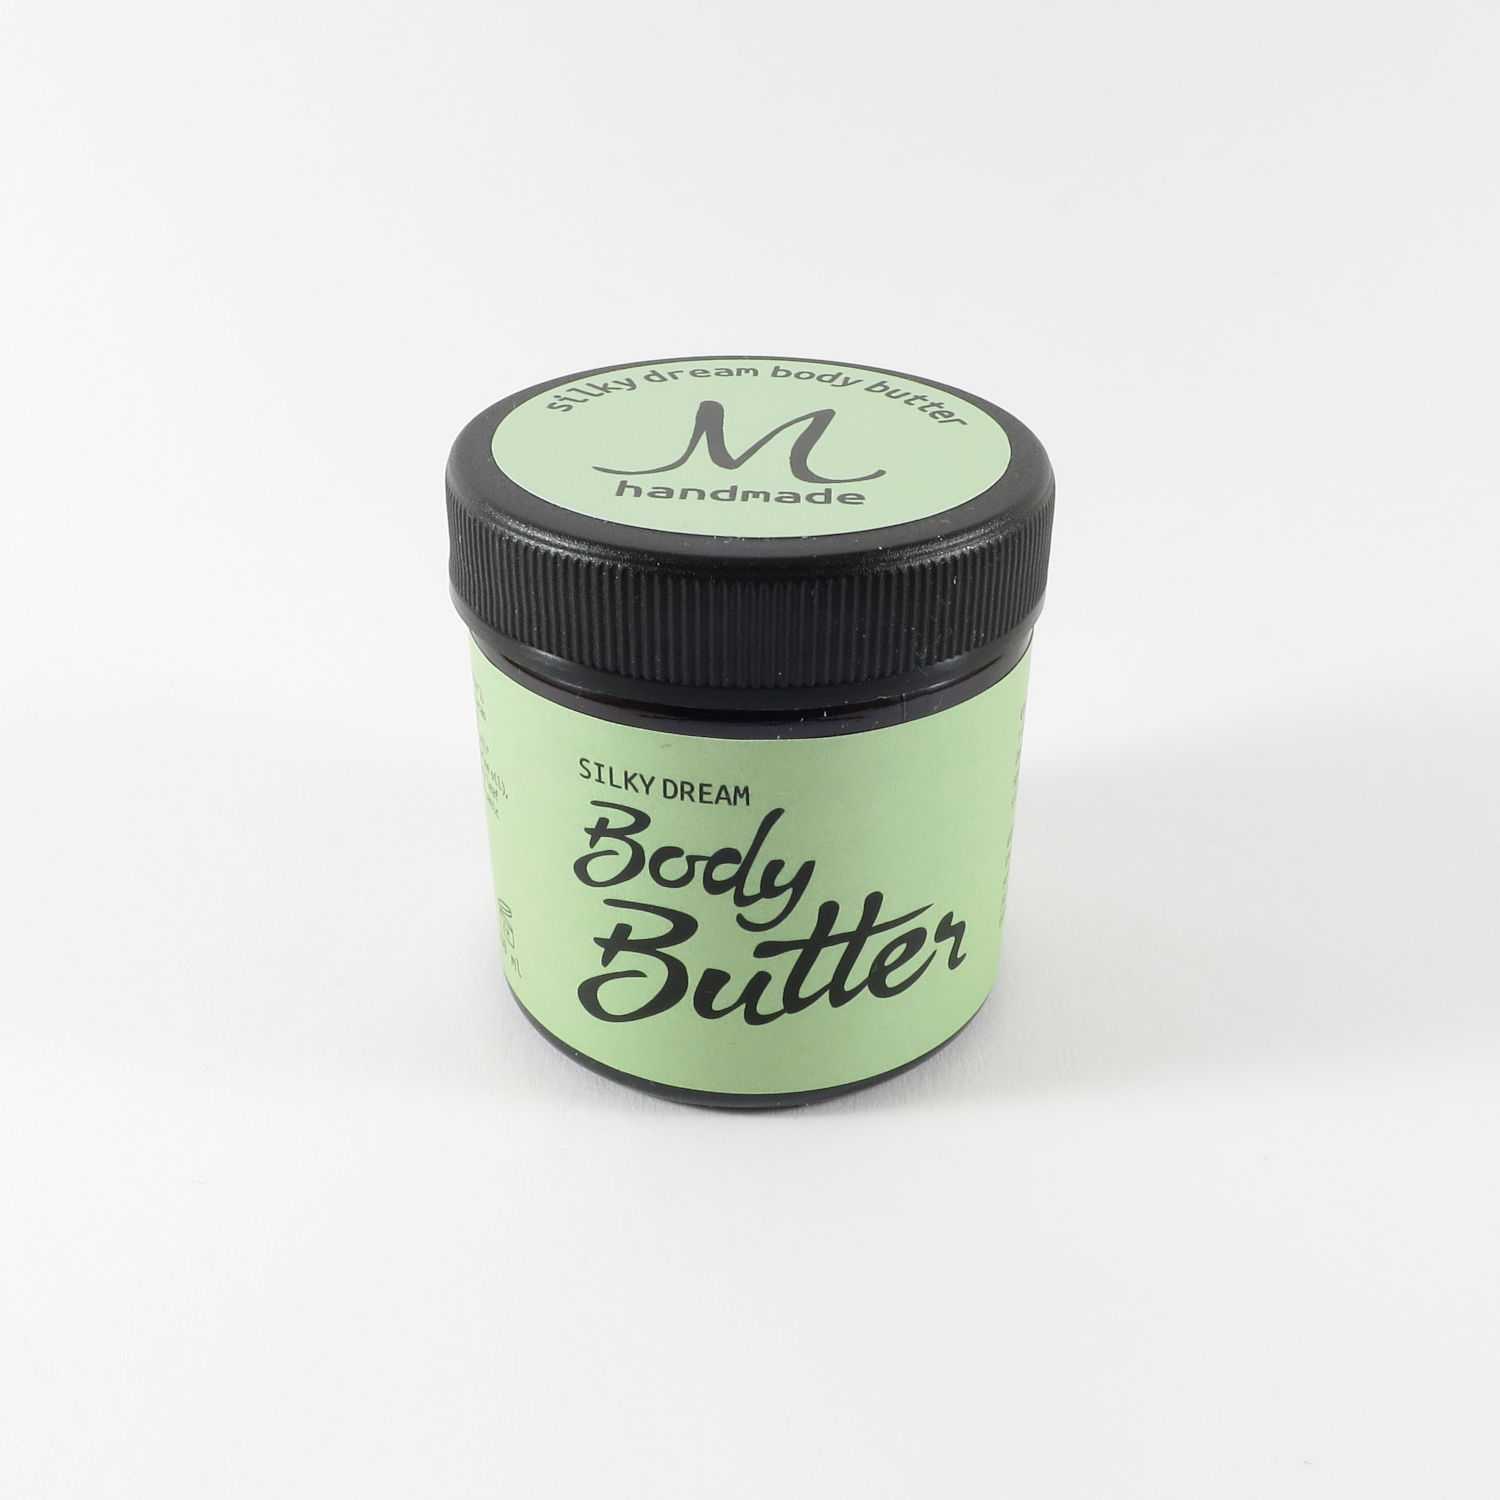 Silky Dream Body Butter, hudkräm, 60 ml